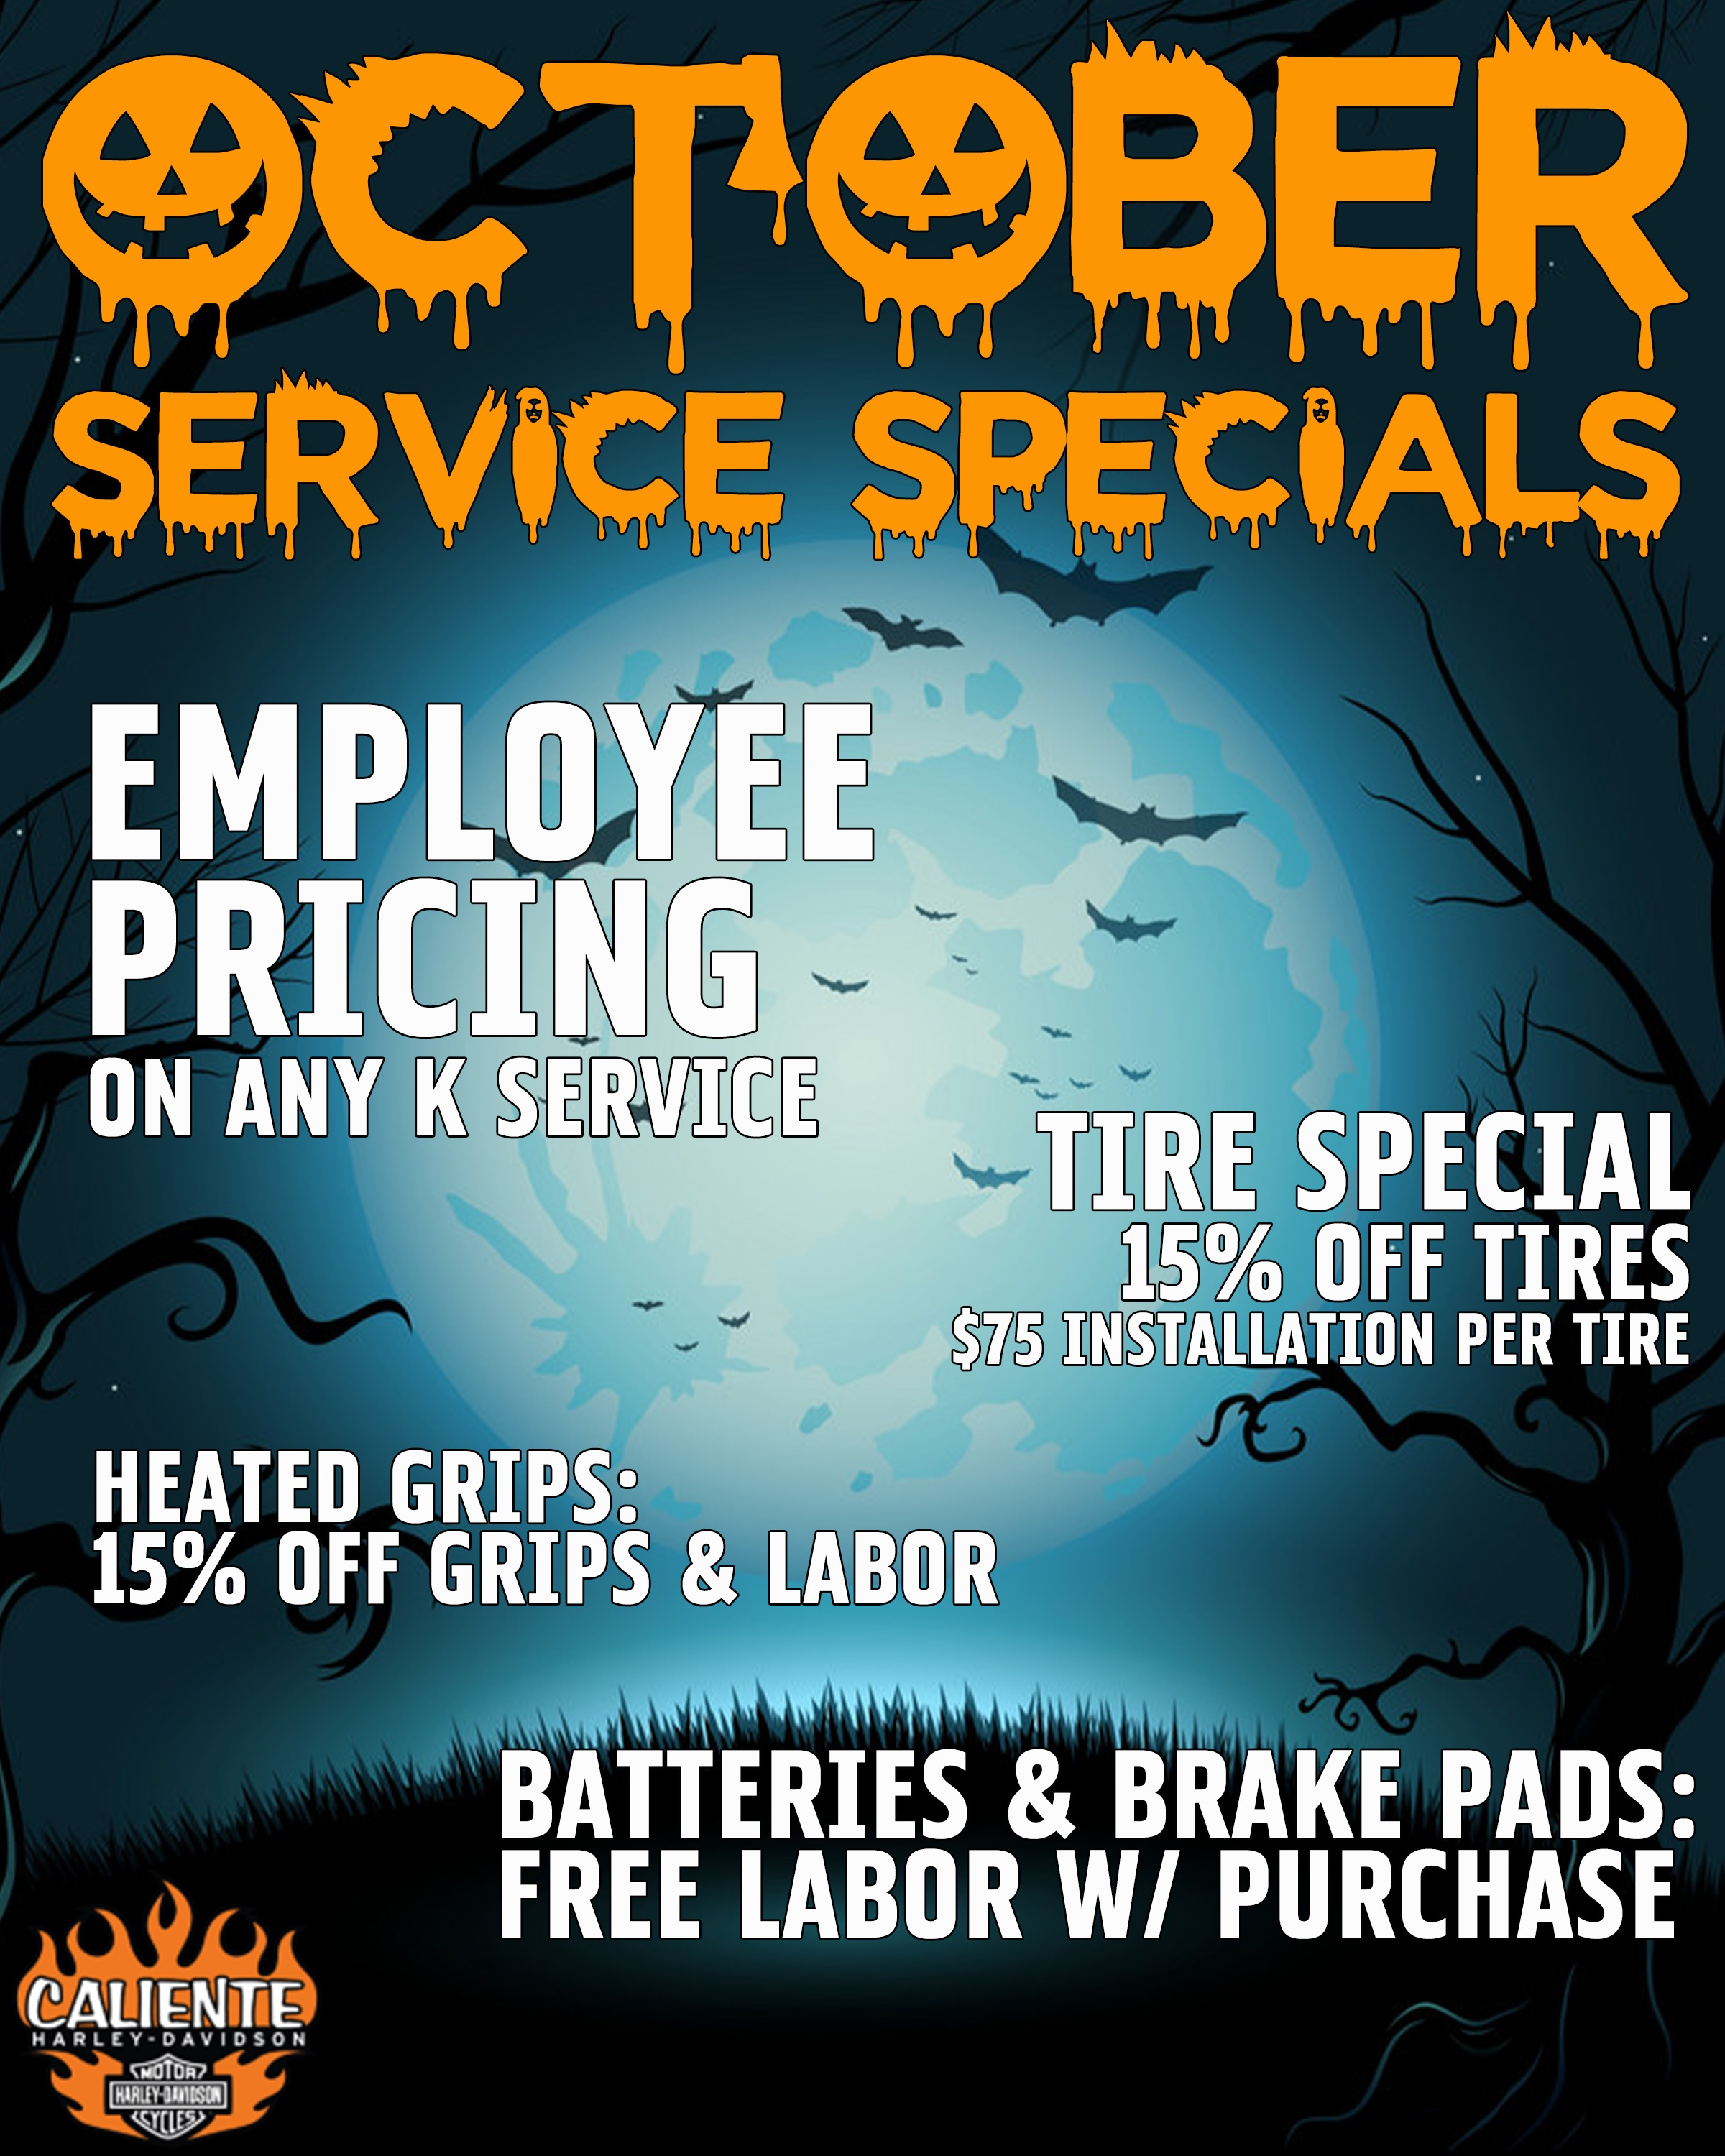 Employee Pricing on any K Service.